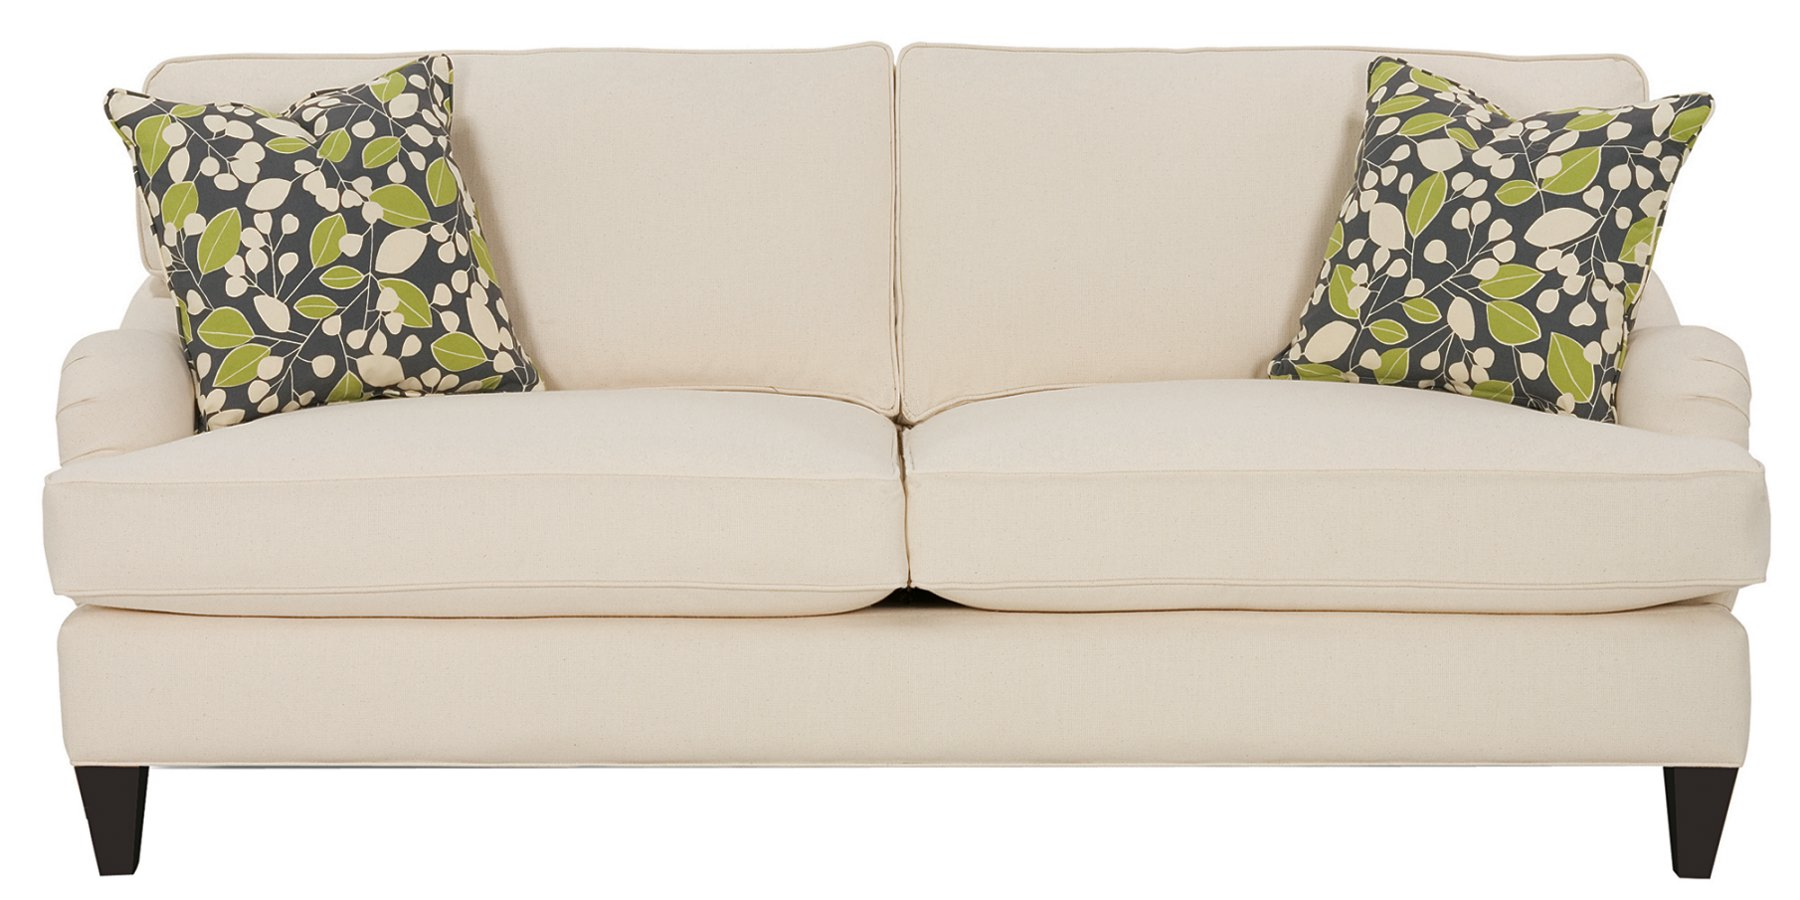 Upholstered English Arm Pillow Back Sofa Amp Chair Collection